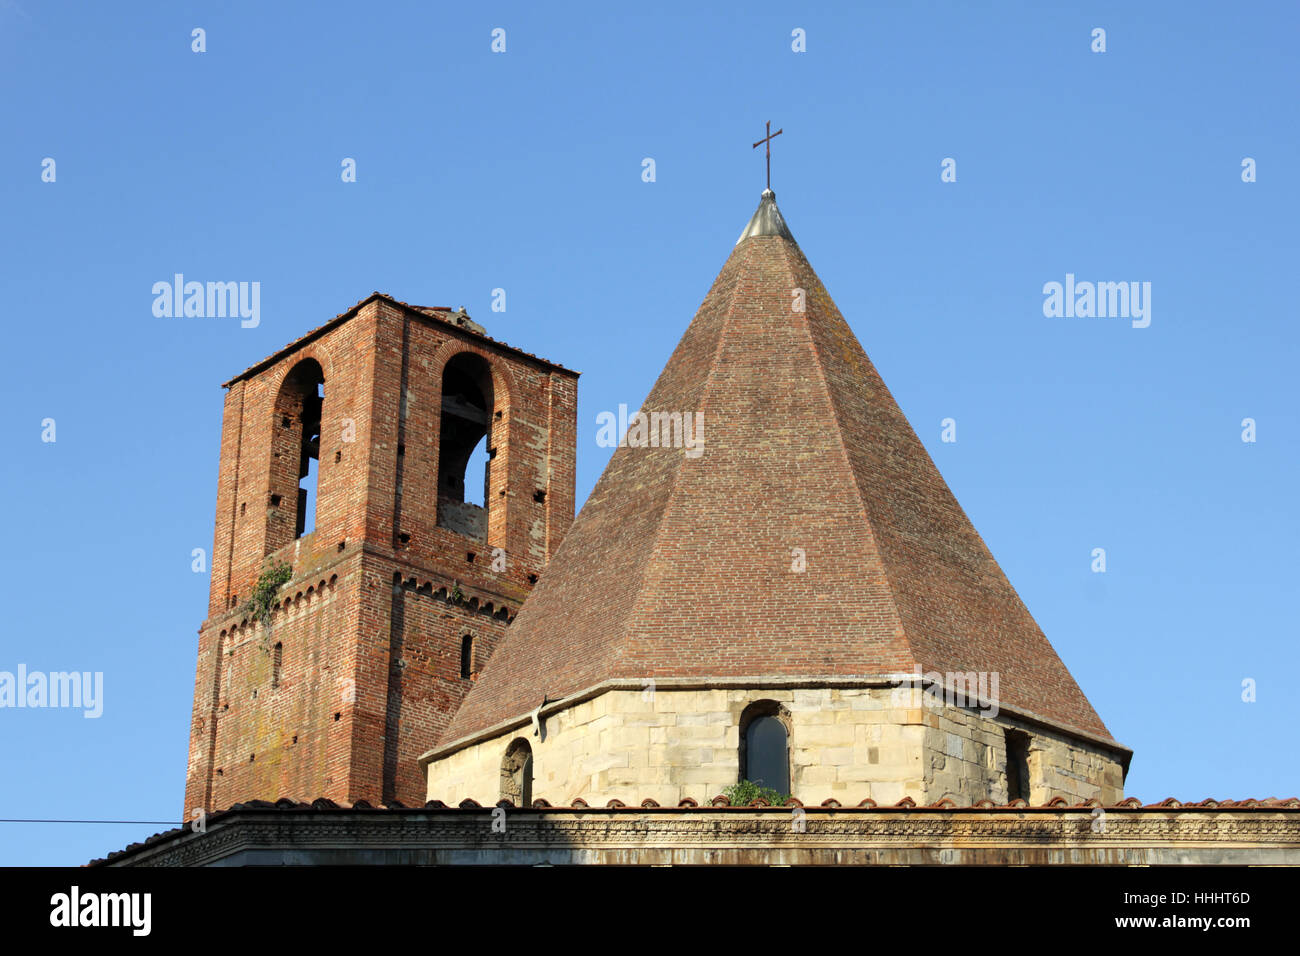 Leaning Tower Pisa Interior Stock Photos Amp Leaning Tower